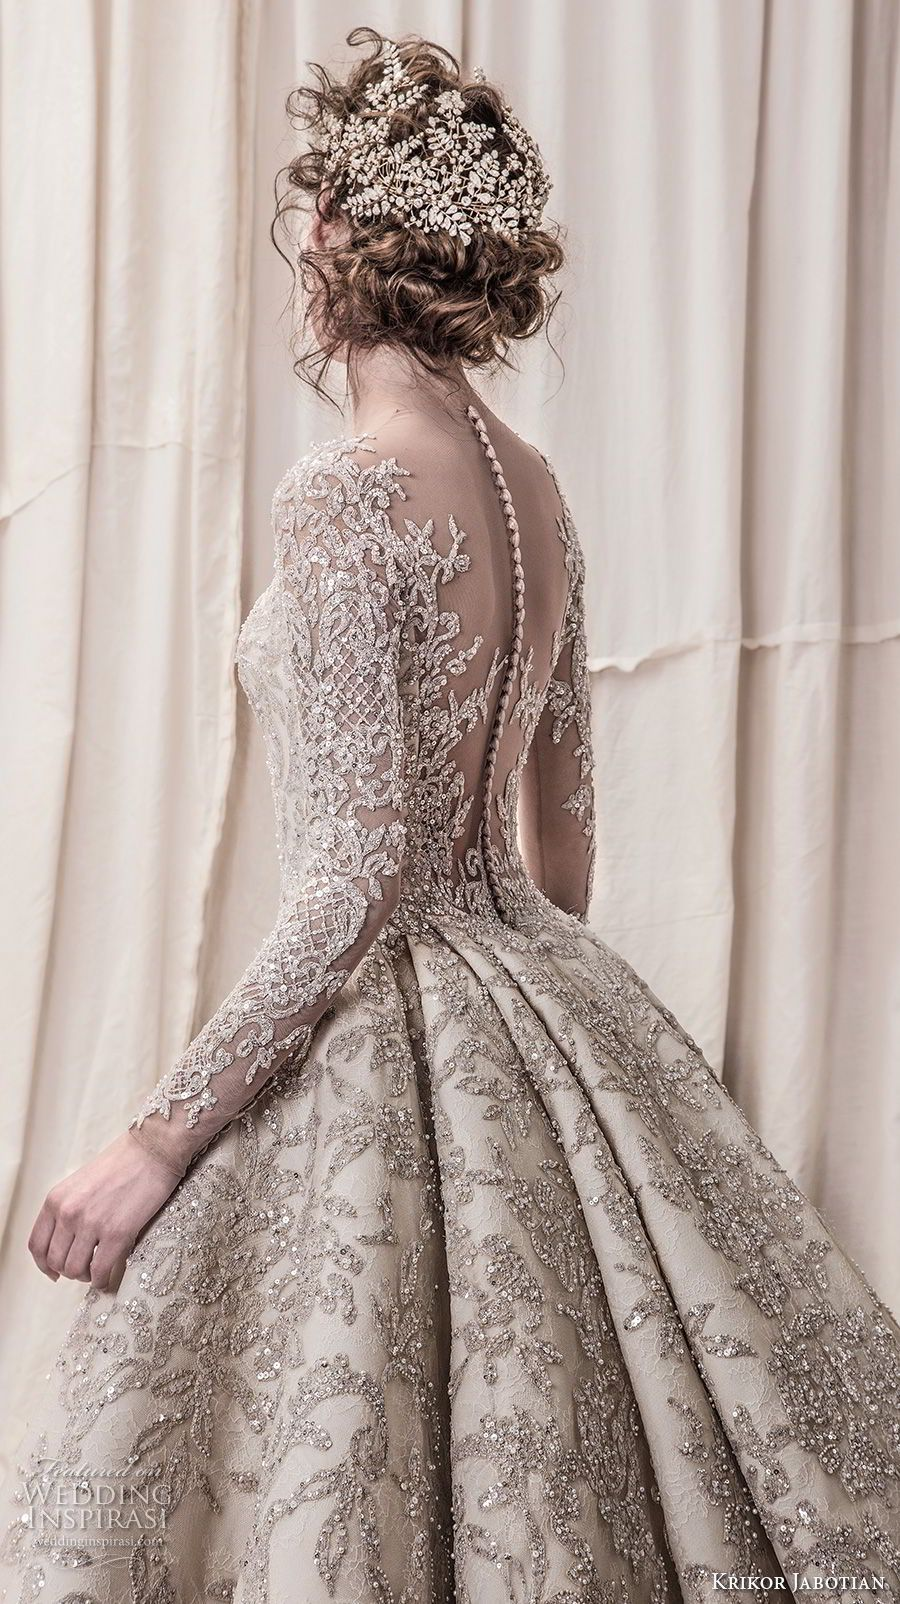 Krikor jabotian spring bridal long sleeves scoop neck full